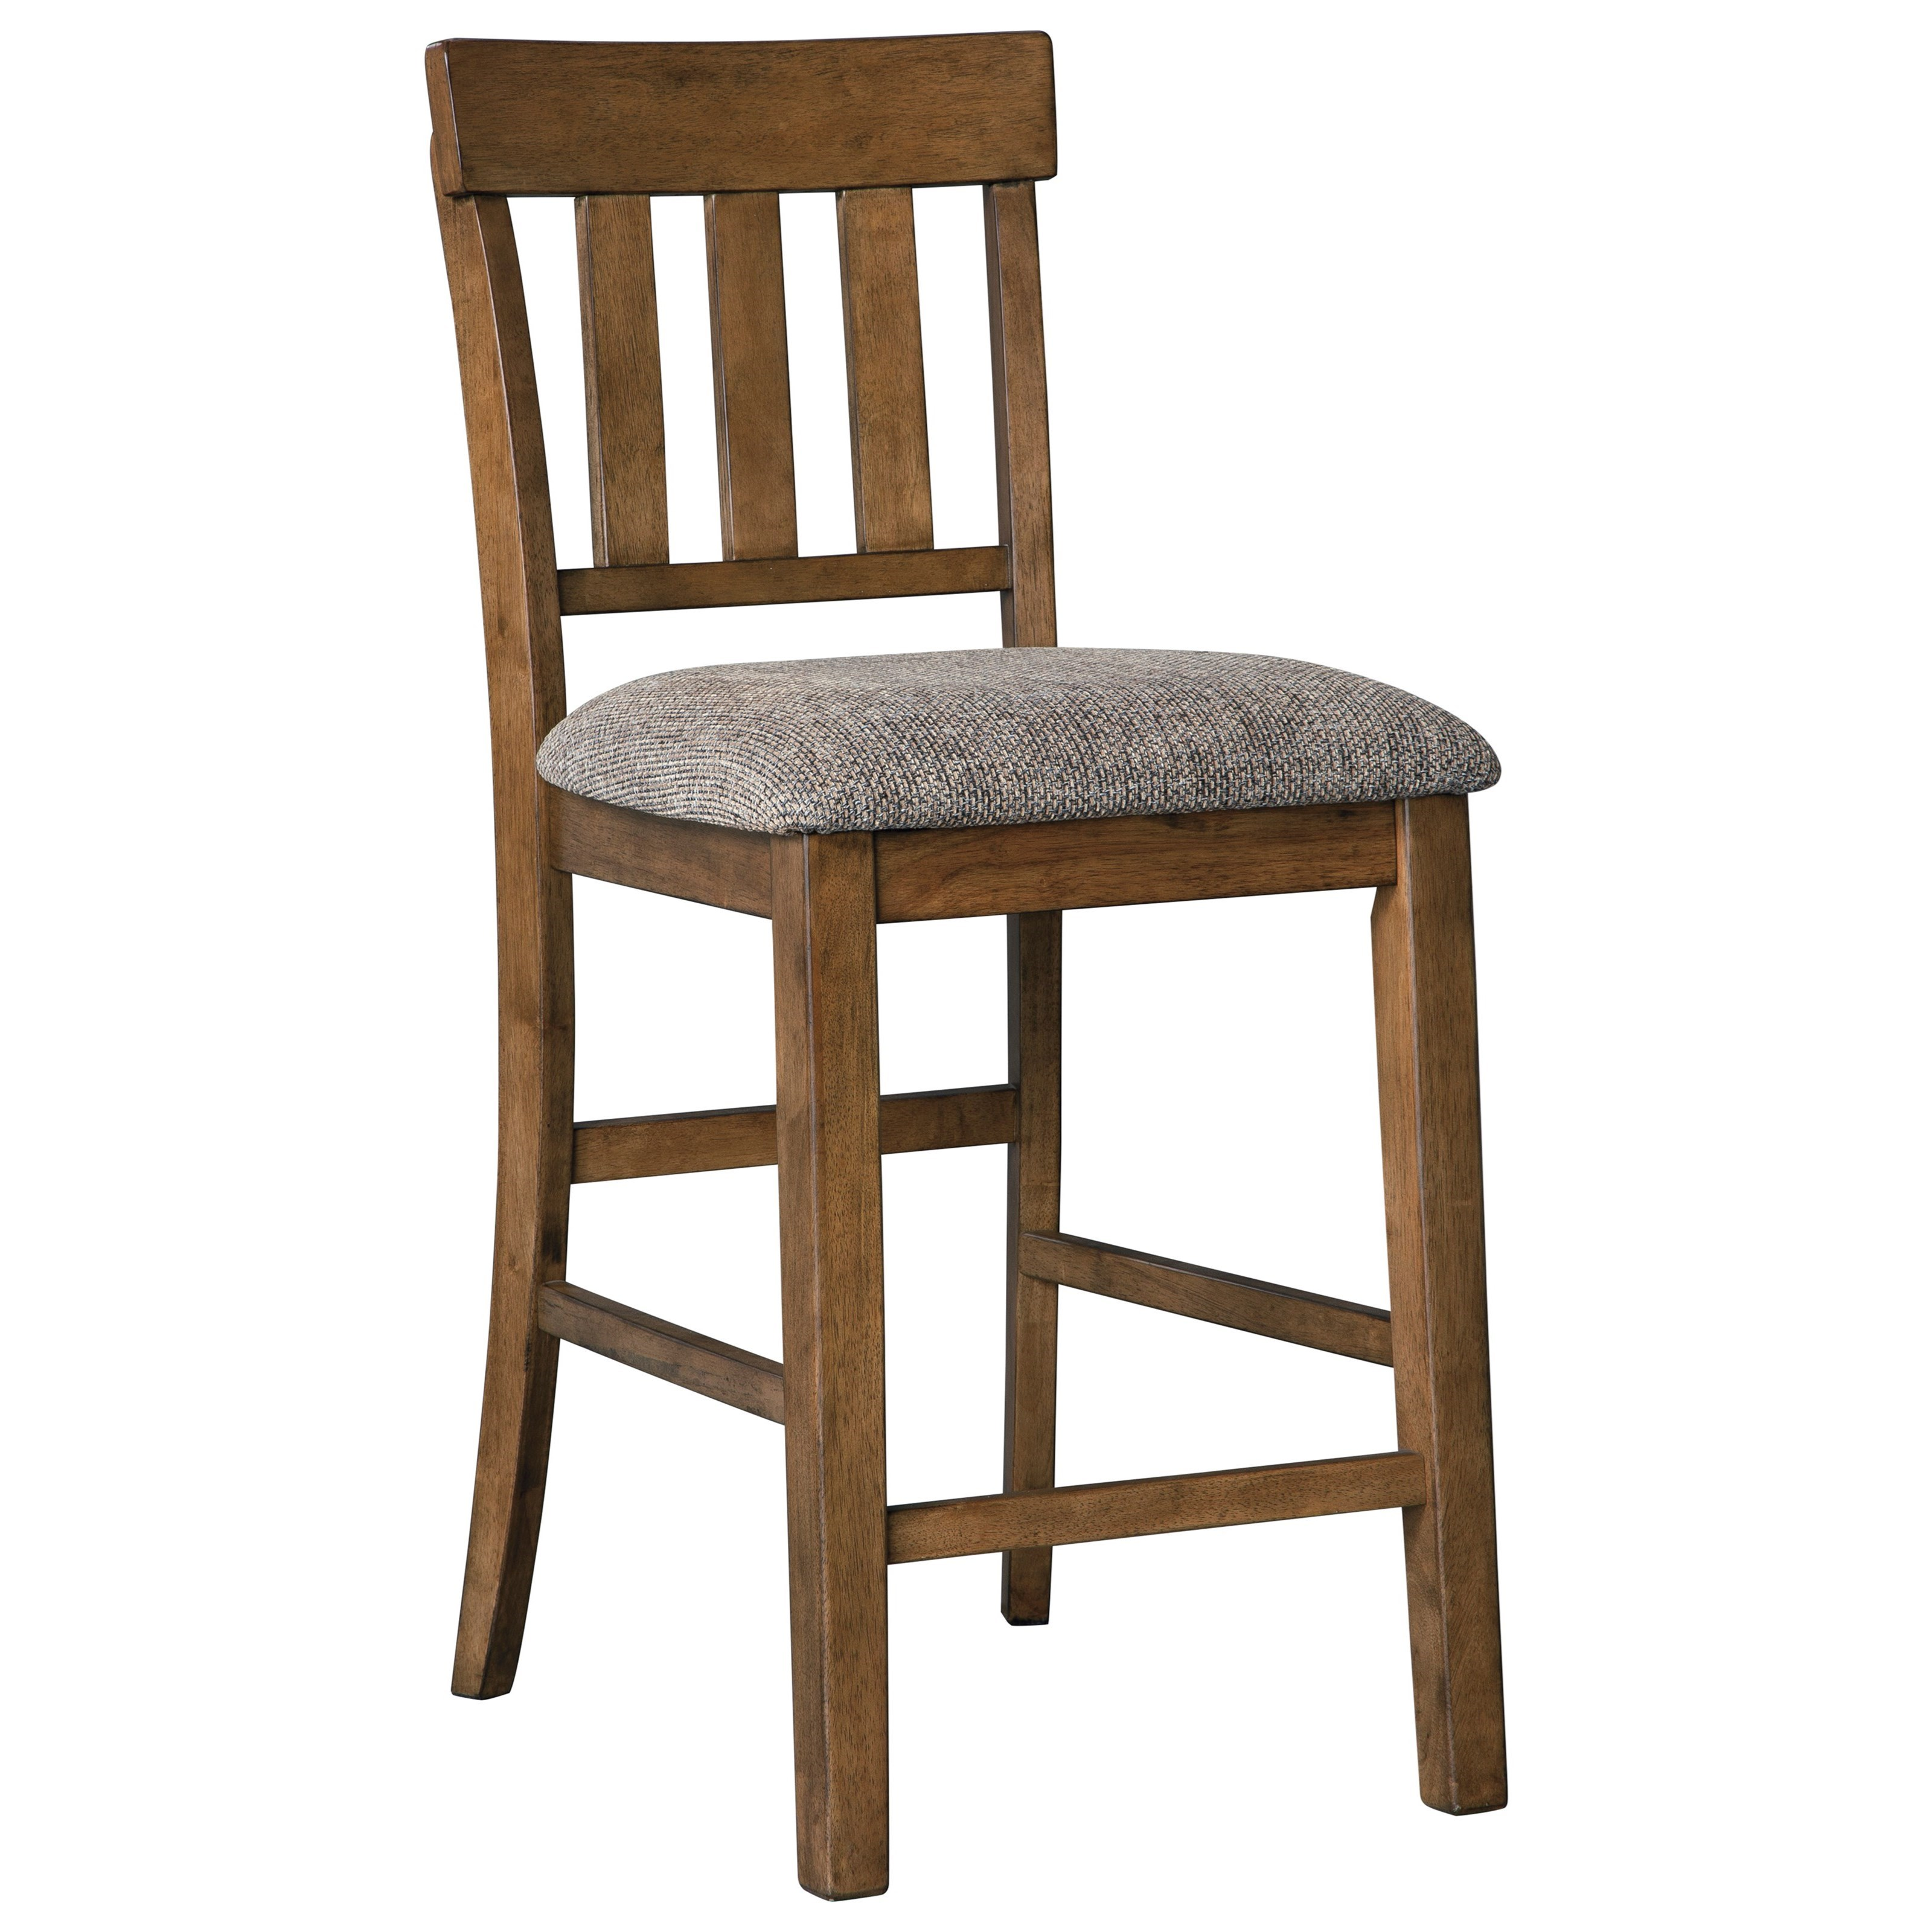 Flaybern Upholstered Barstool by Benchcraft at Johnny Janosik